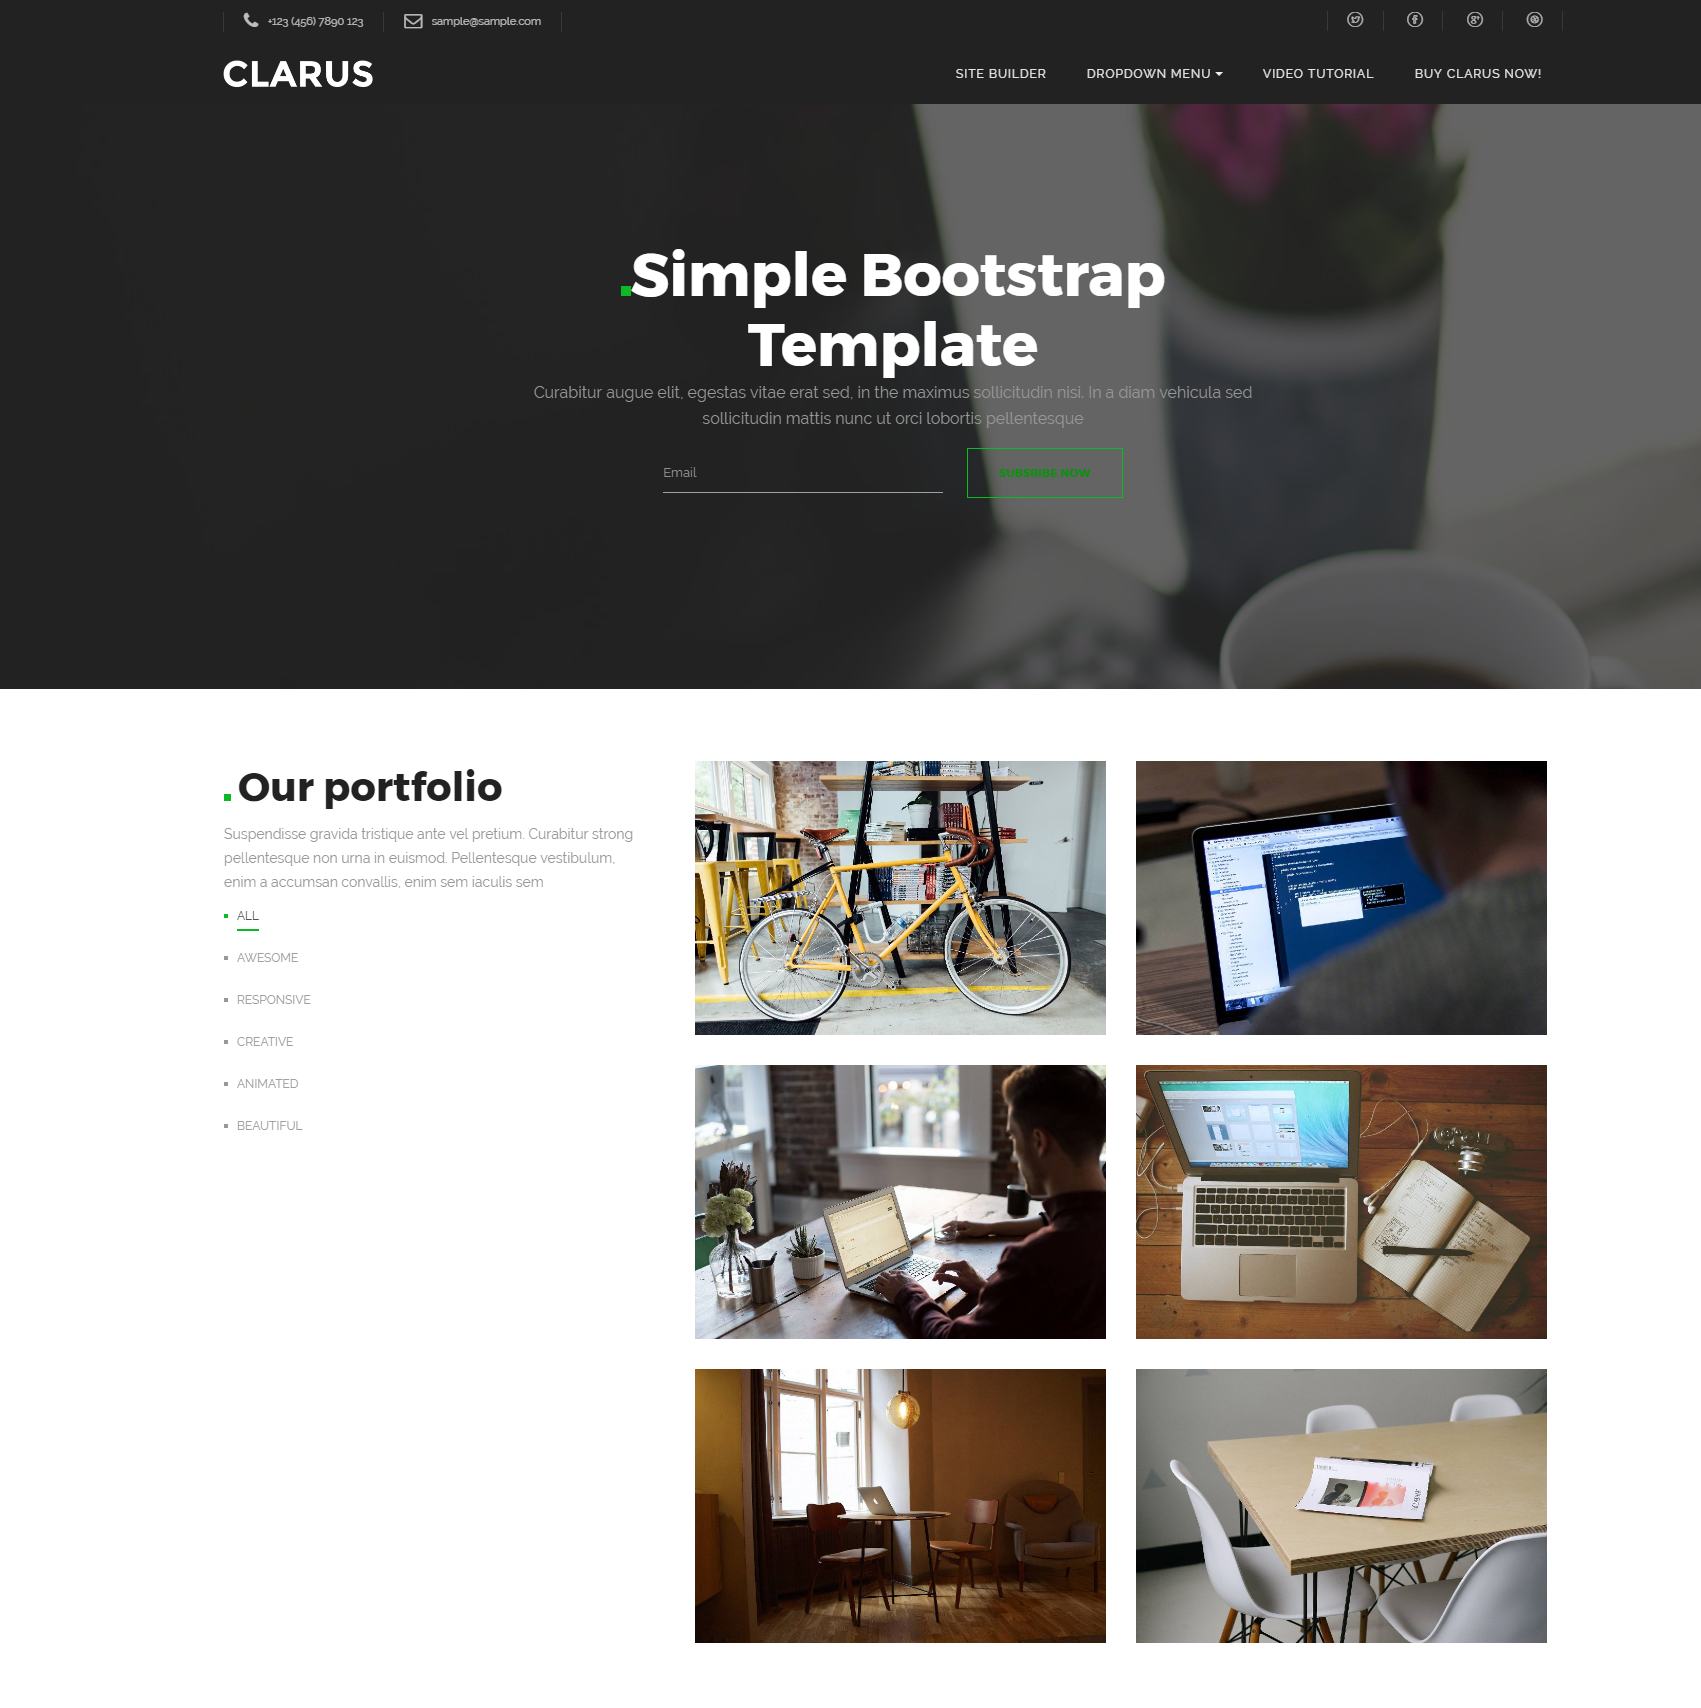 Responsive Bootstrap Simple Templates